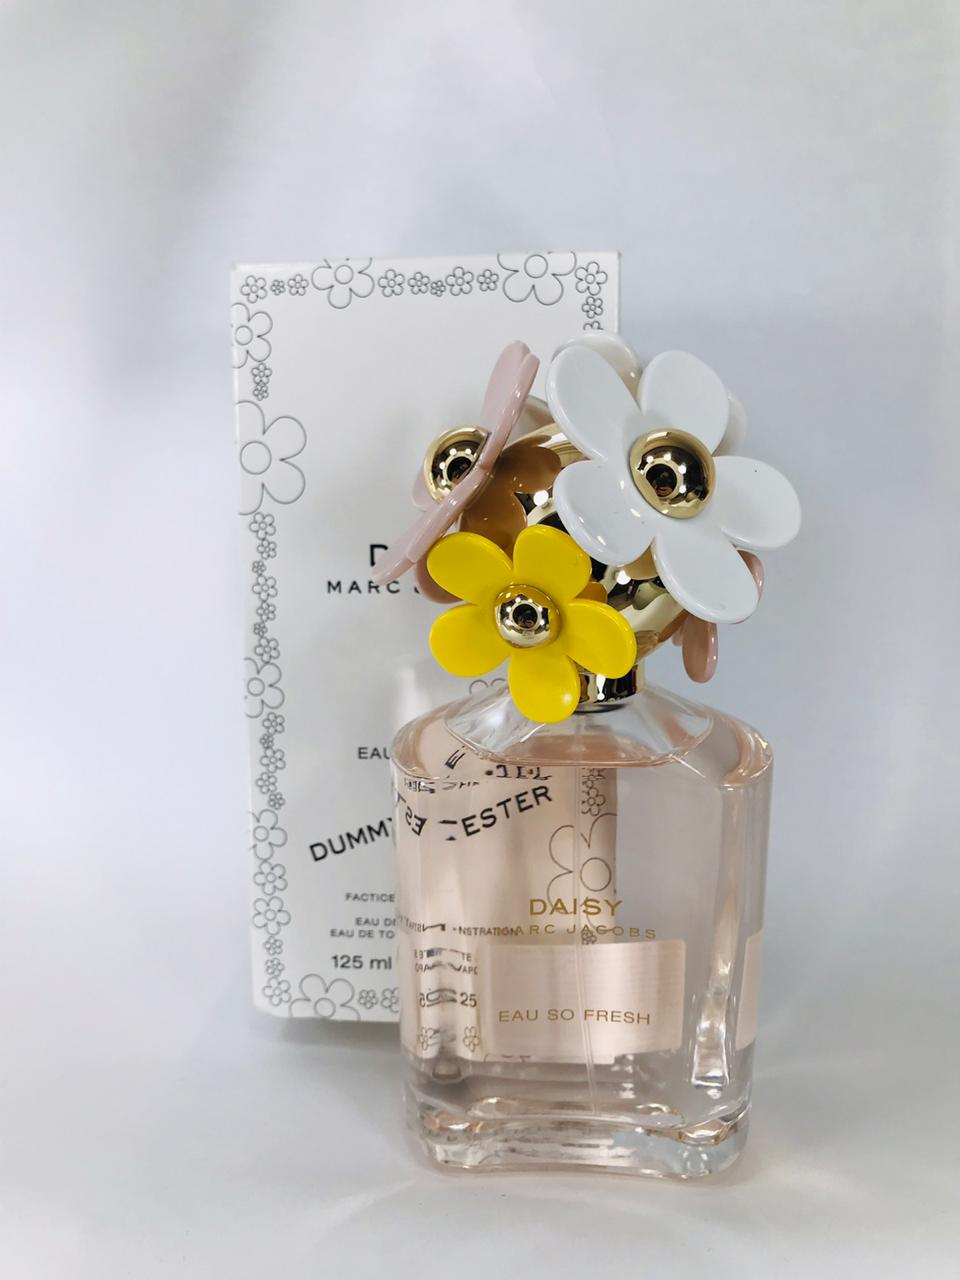 Daisy Marc Jacobs Feminino Eau So Fresh 125 ml  - Tester